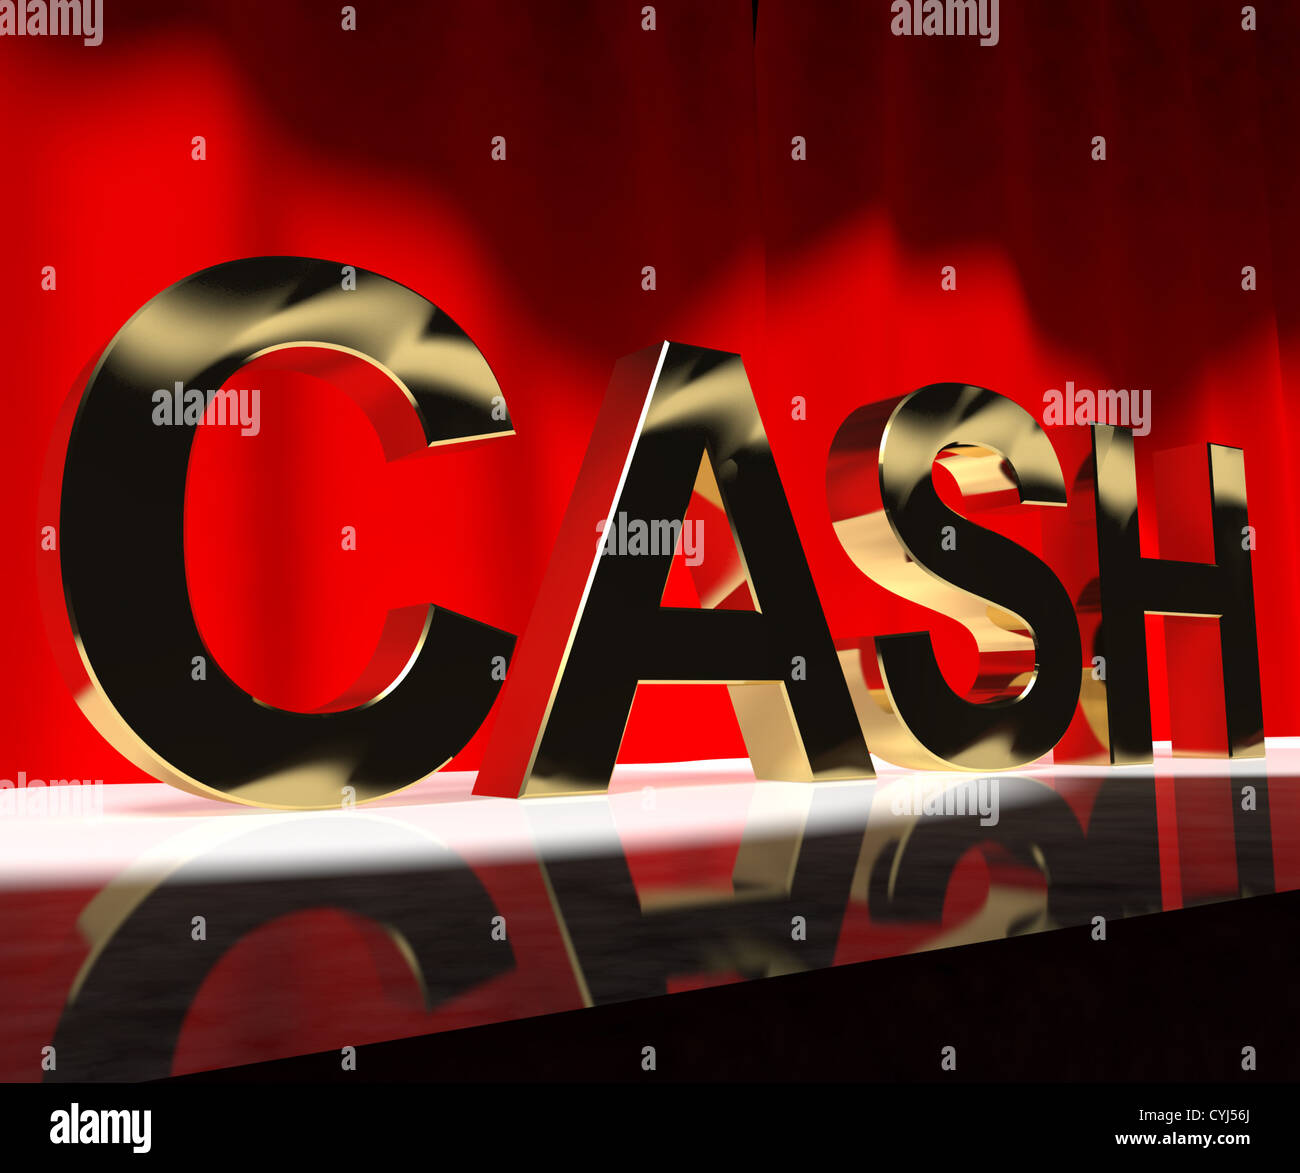 Cash on stage as symbol for currency and finance or acting careers cash on stage as symbol for currency and finance or acting careers buycottarizona